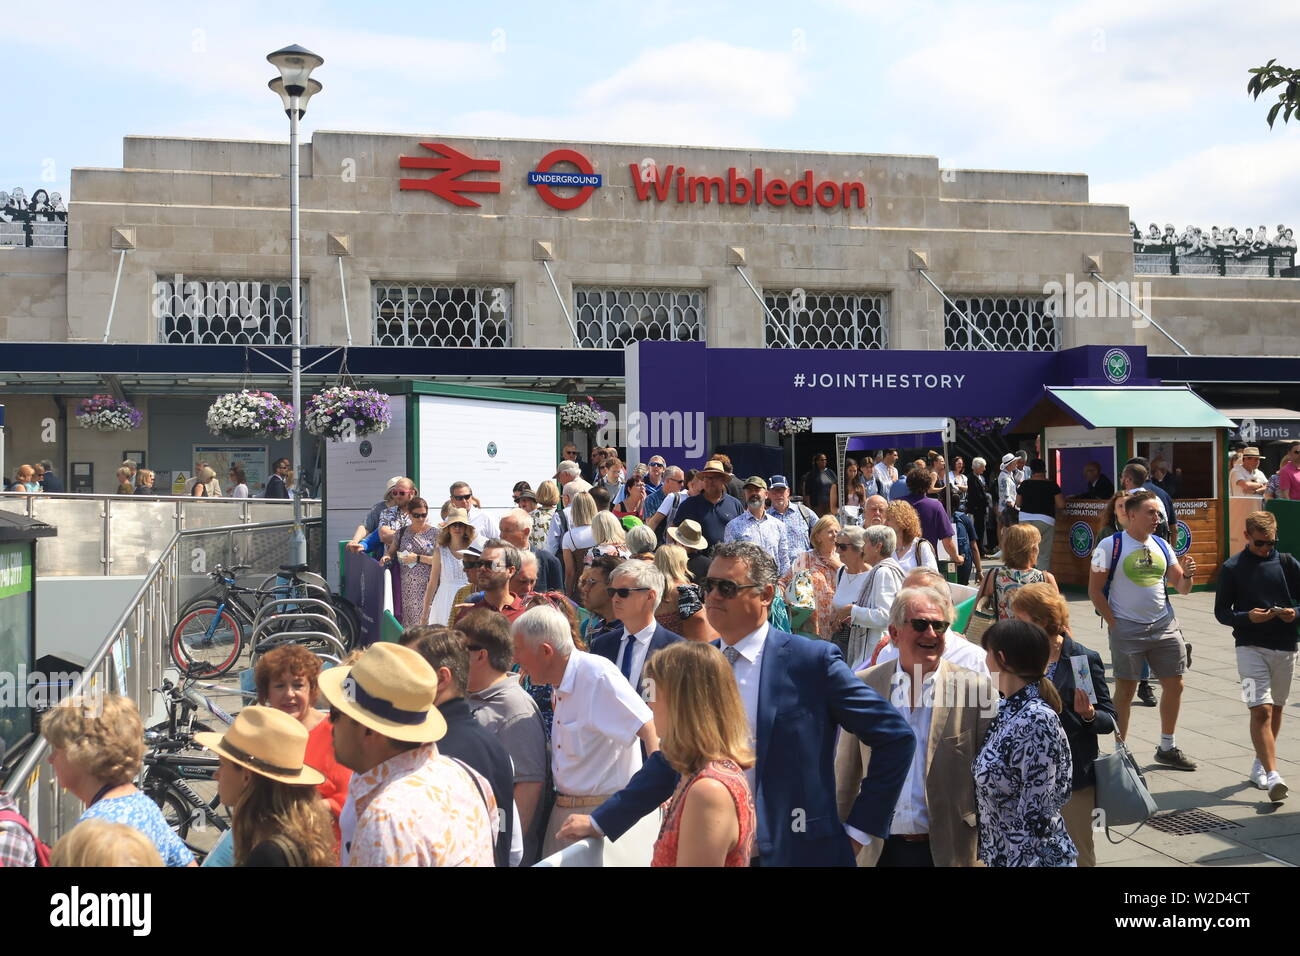 Wimbledon, London. UK. 8th July 2019. Large crowds arrive at Wimbledon station to attend the matches at the All Enngland Tennis Club  on the second Monday which is also referred to as Manic Monday as it is the busiest day of the Wimbledon Championships with the last 16 matches taking place  for  men's and Ladies 's singles of the tennis tournament . Credit: amer ghazzal/Alamy Live News Stock Photo